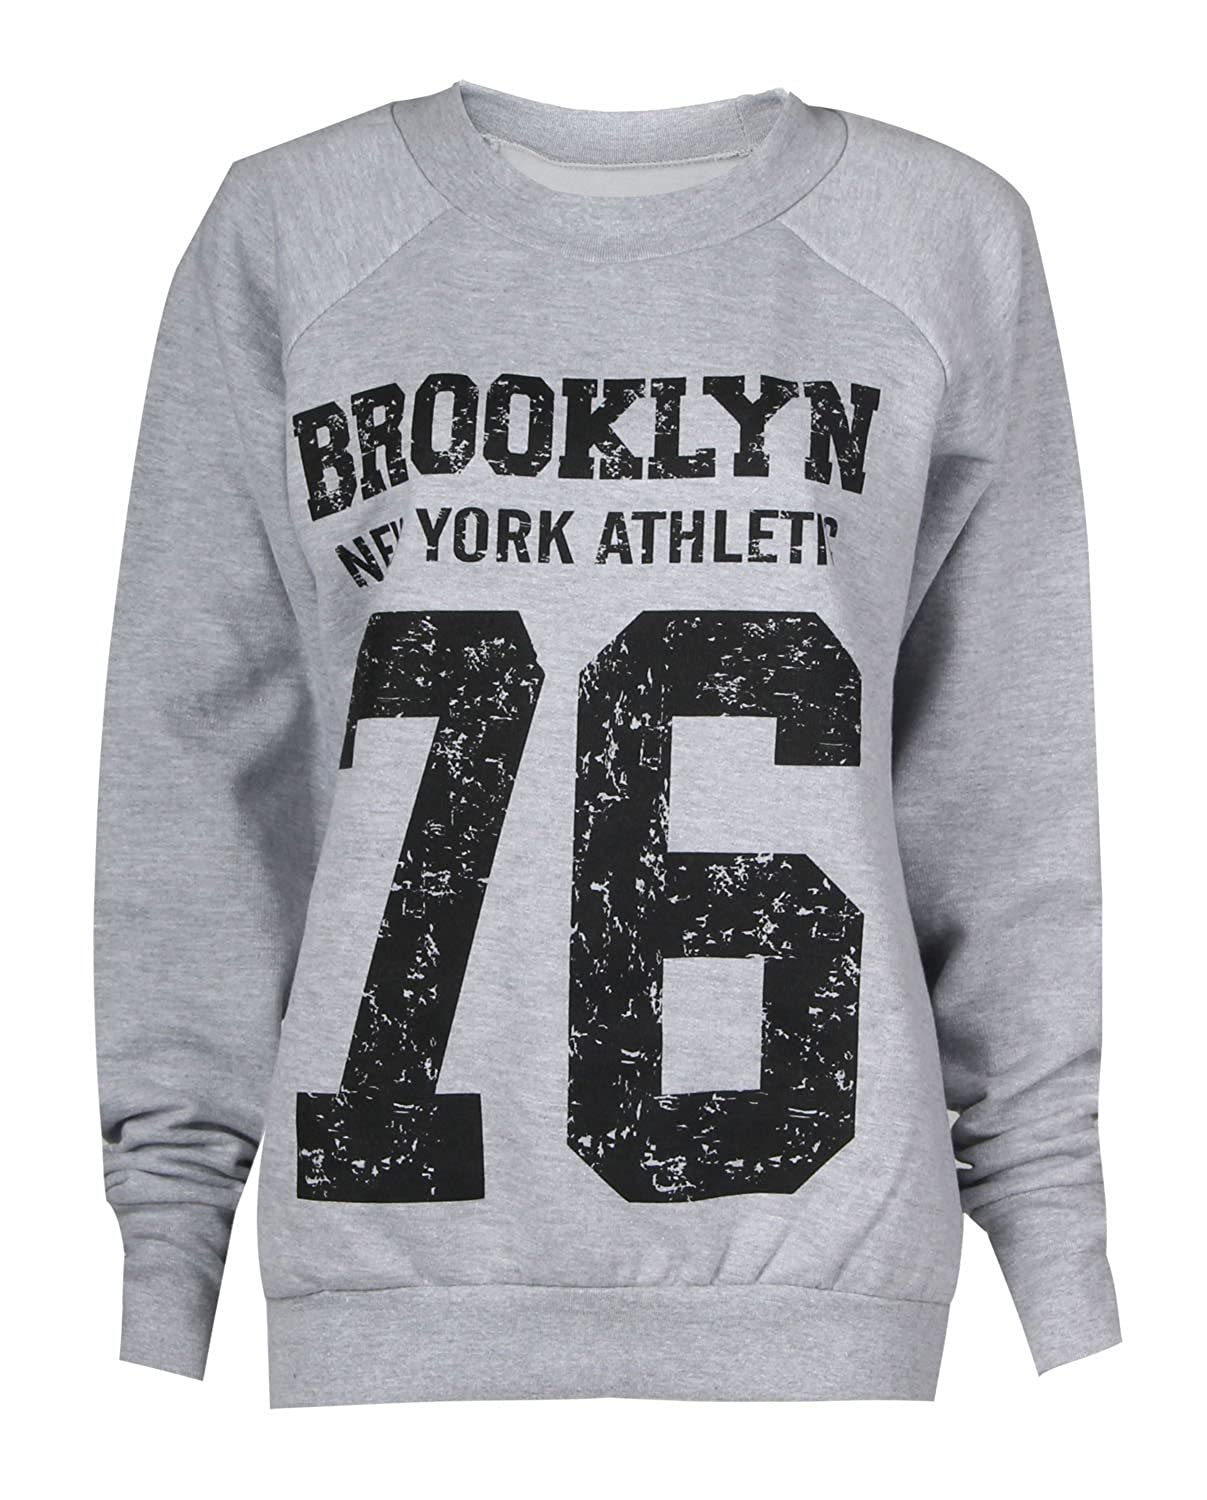 Damen Sweatshirt Geek Brooklyn Boy Cocaine